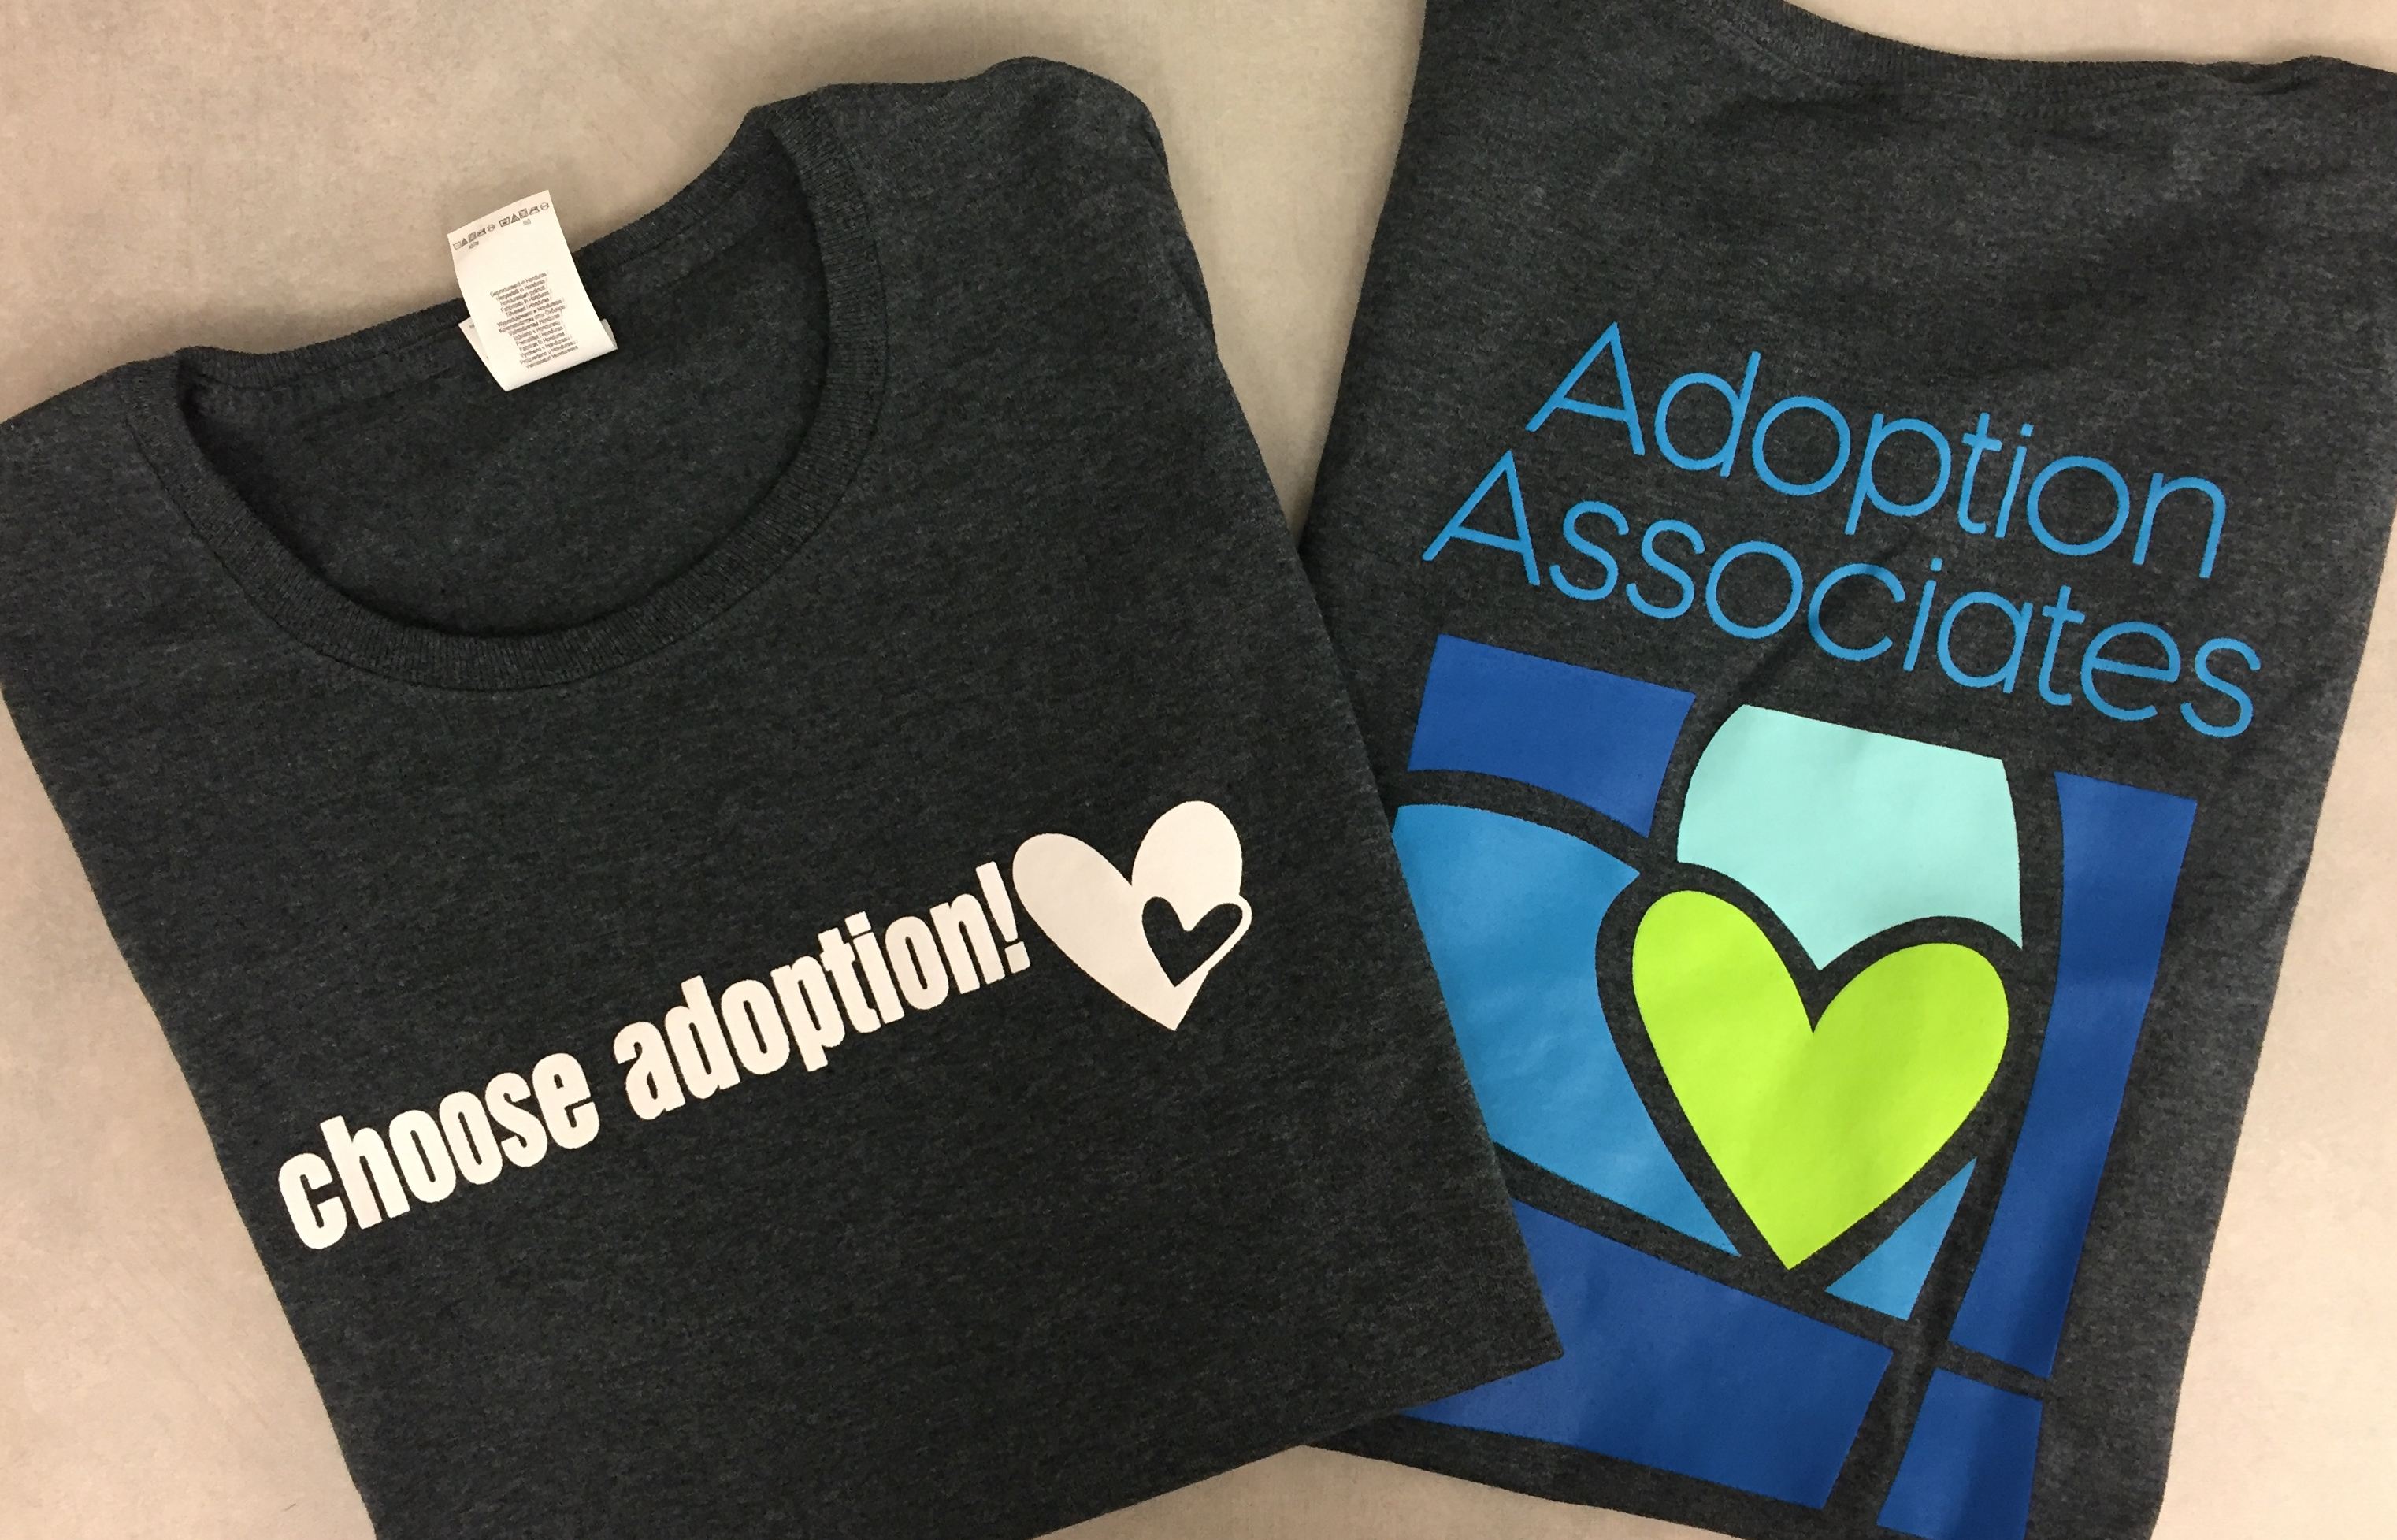 'Choose Adoption!' Shirts Still Available in Some Sizes